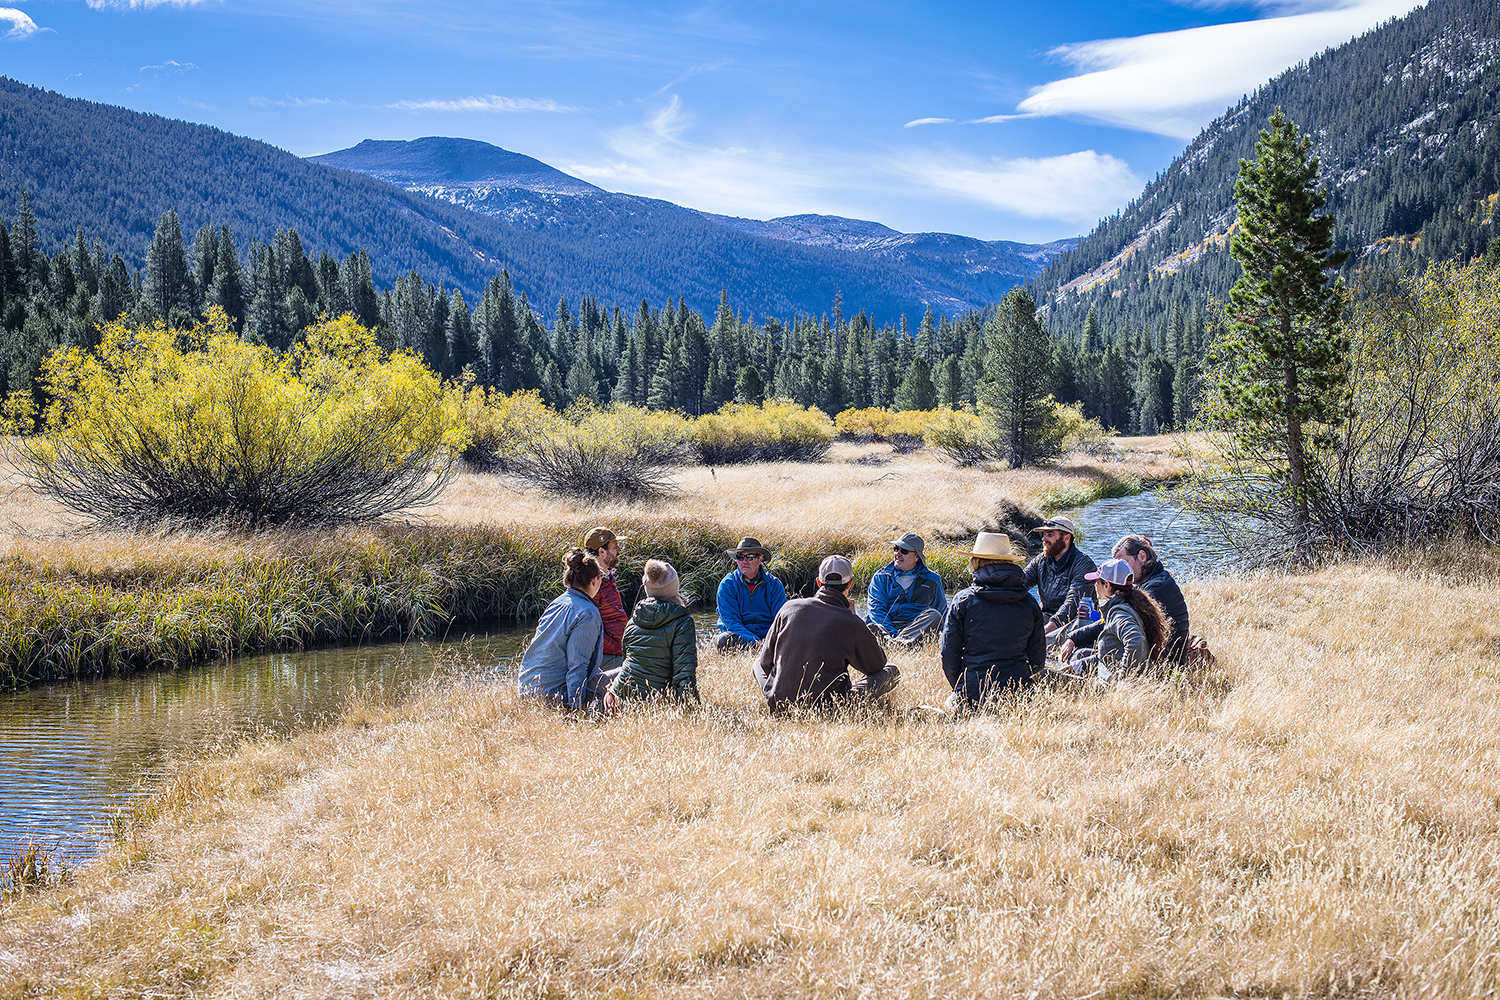 our Yosemite group having a check-in and awareness practice in Toulumne Meadows. Photo by Yosemite photographer-in-residence  Ian Momsen .